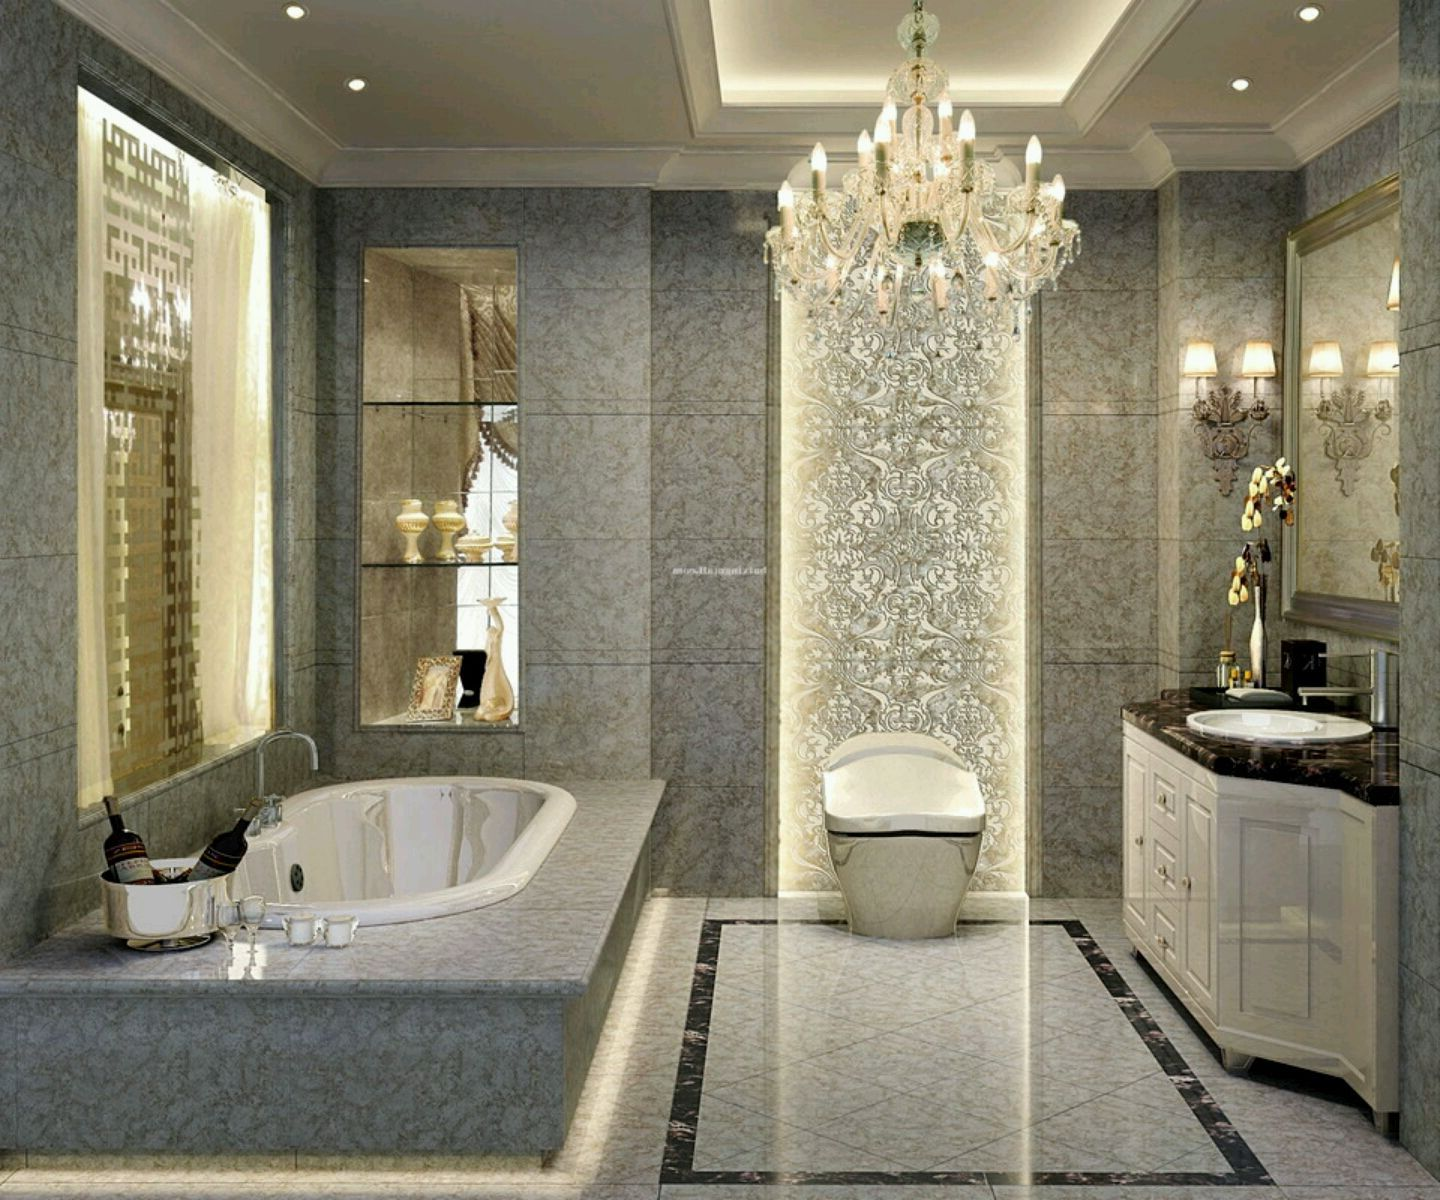 Luxury Small Bathrooms 25 modern luxury bathroom designs | modern luxury bathroom